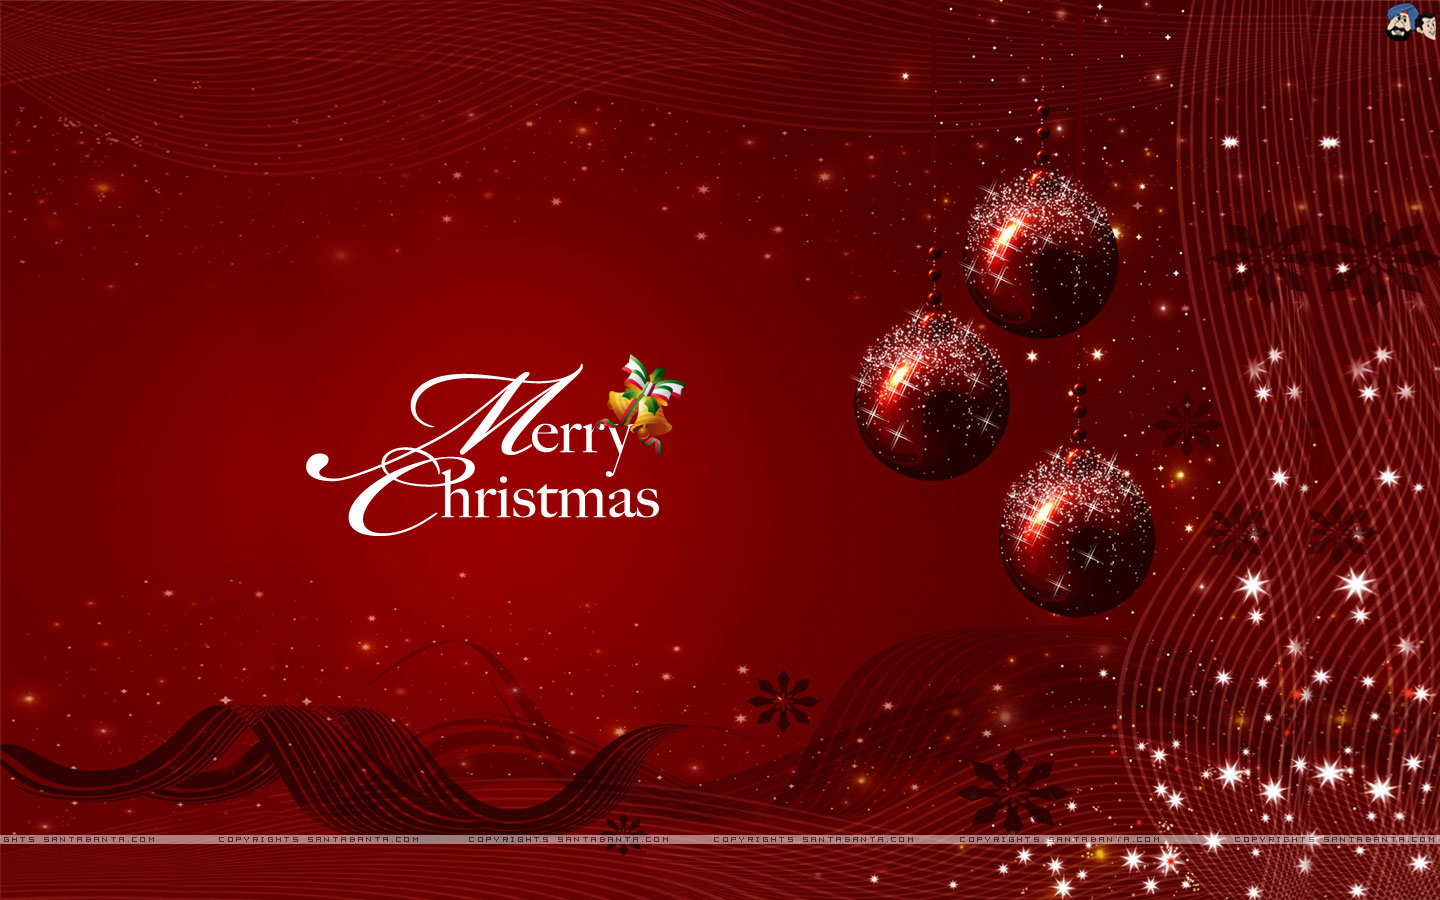 christmas wallpaper50 1440x900